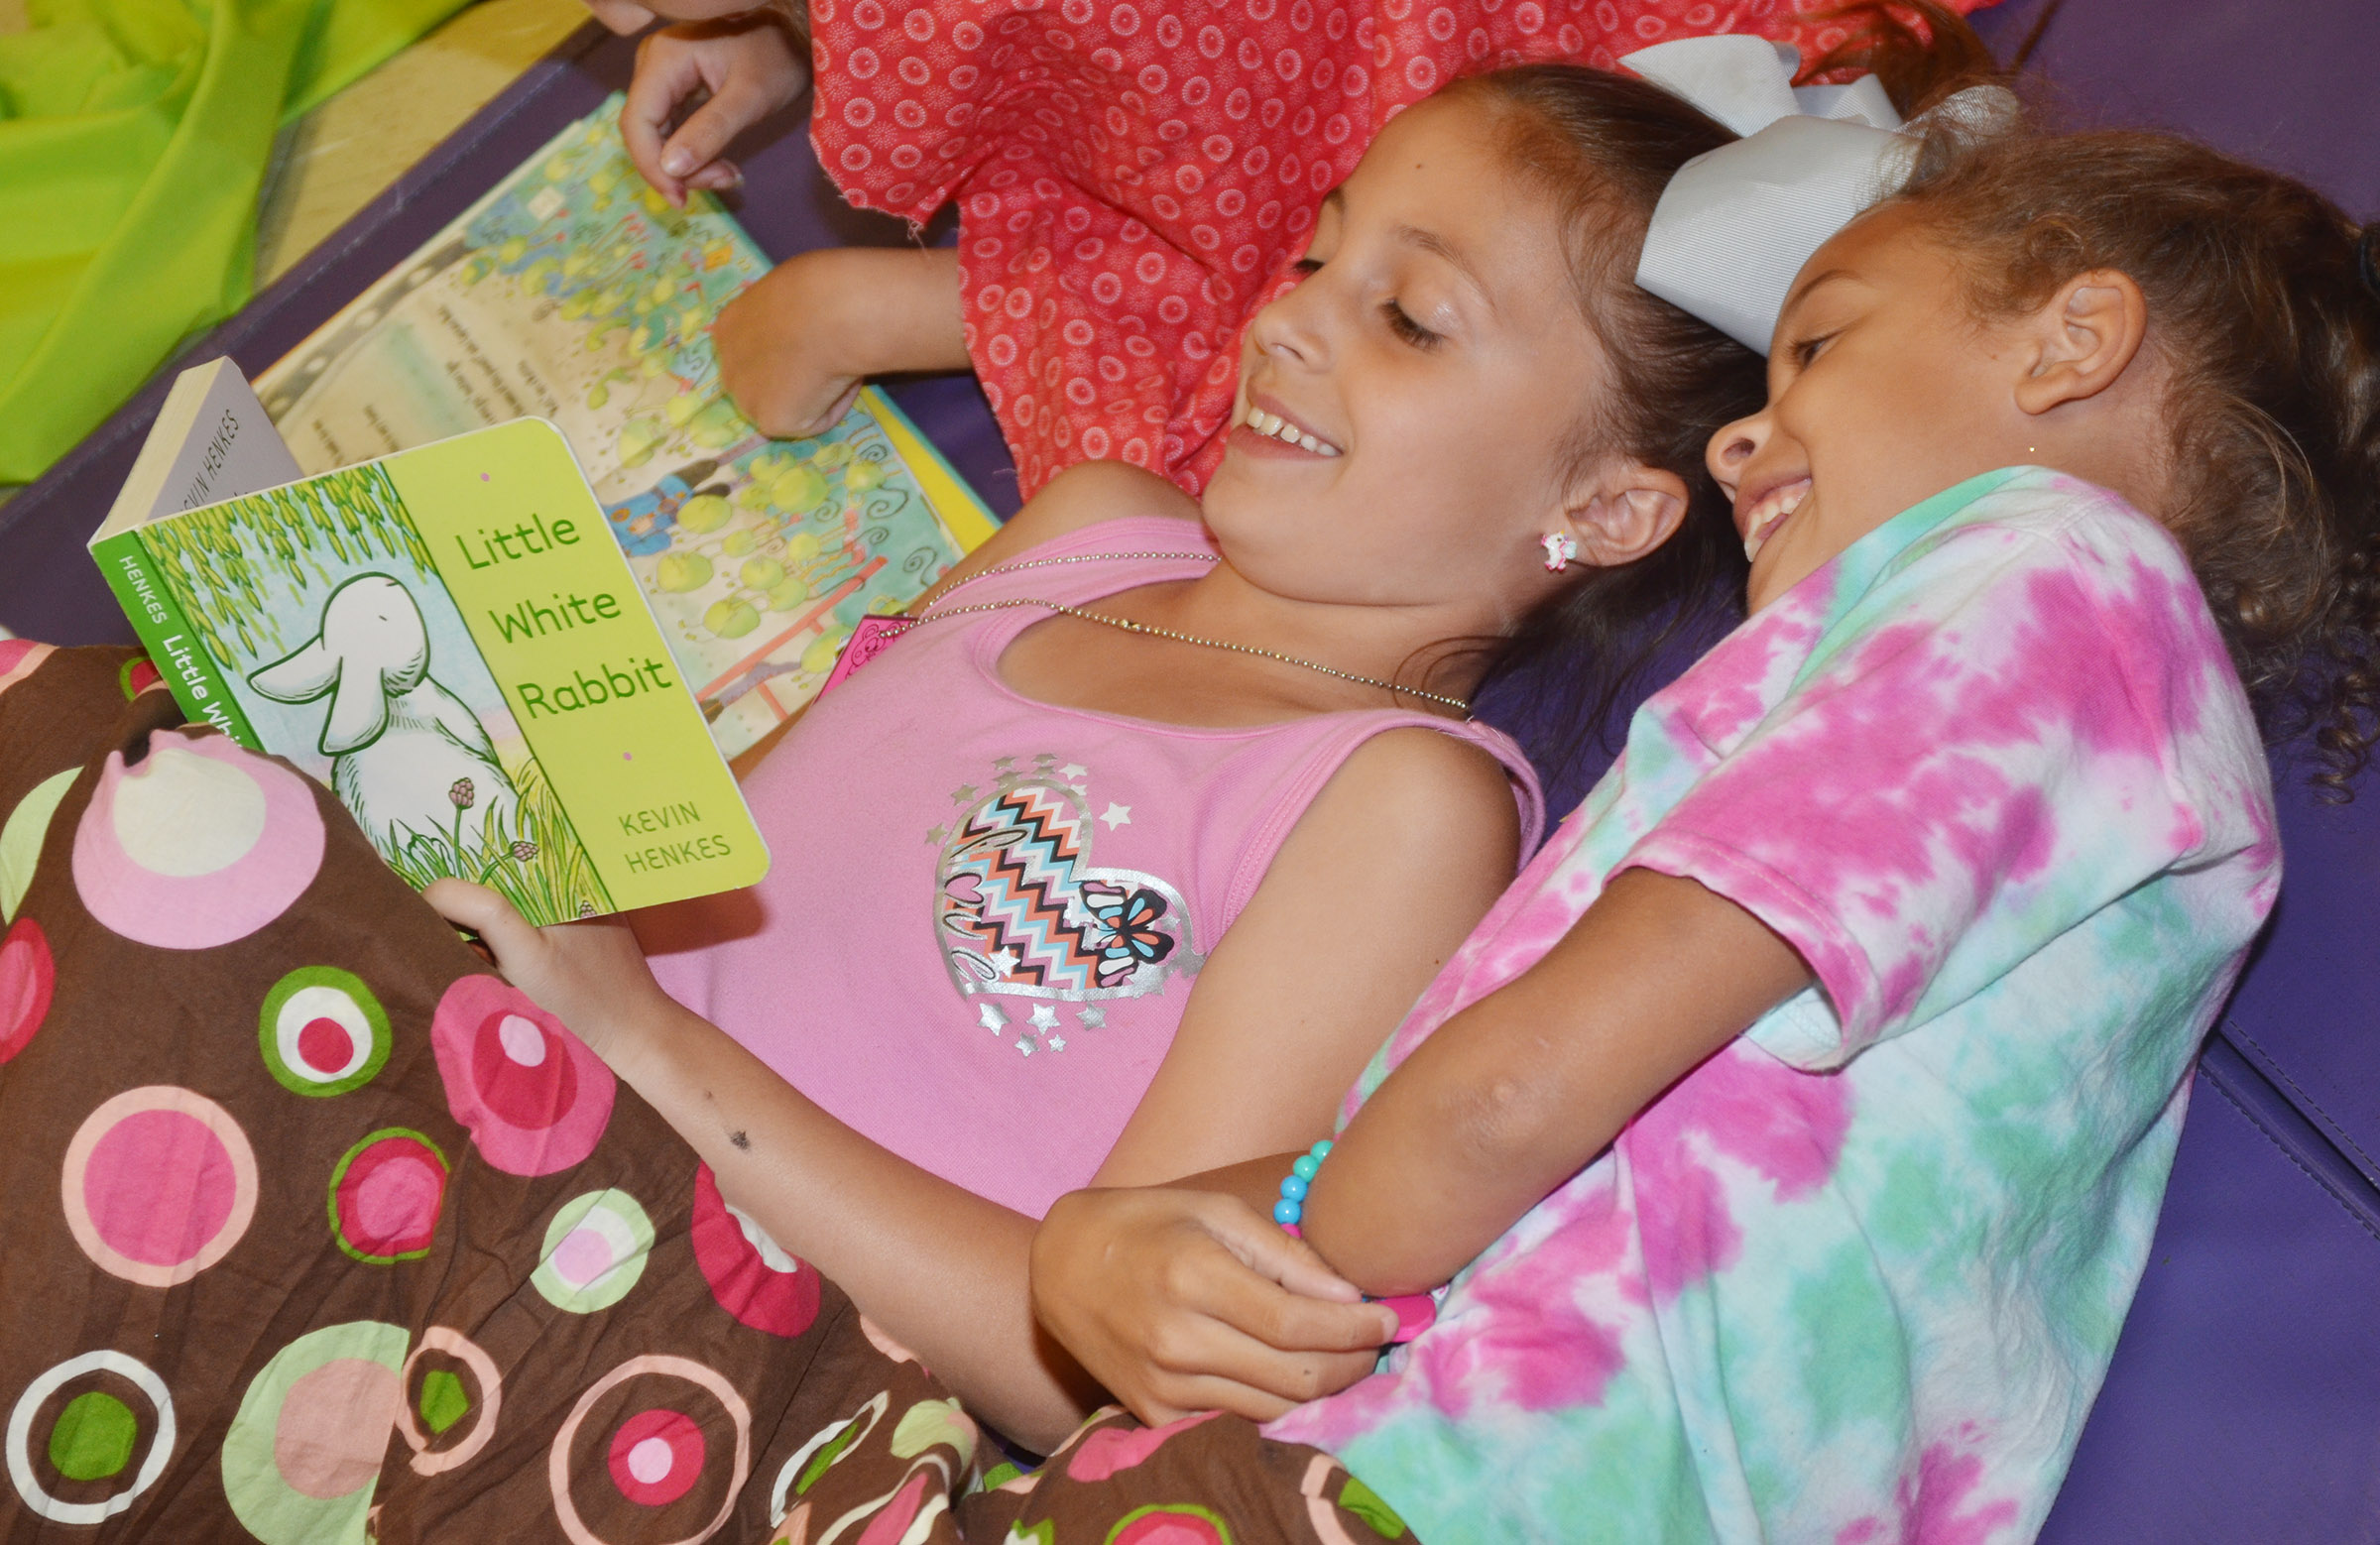 CES first-graders Lillian Martin, at left, and Keiava Thompson read together.